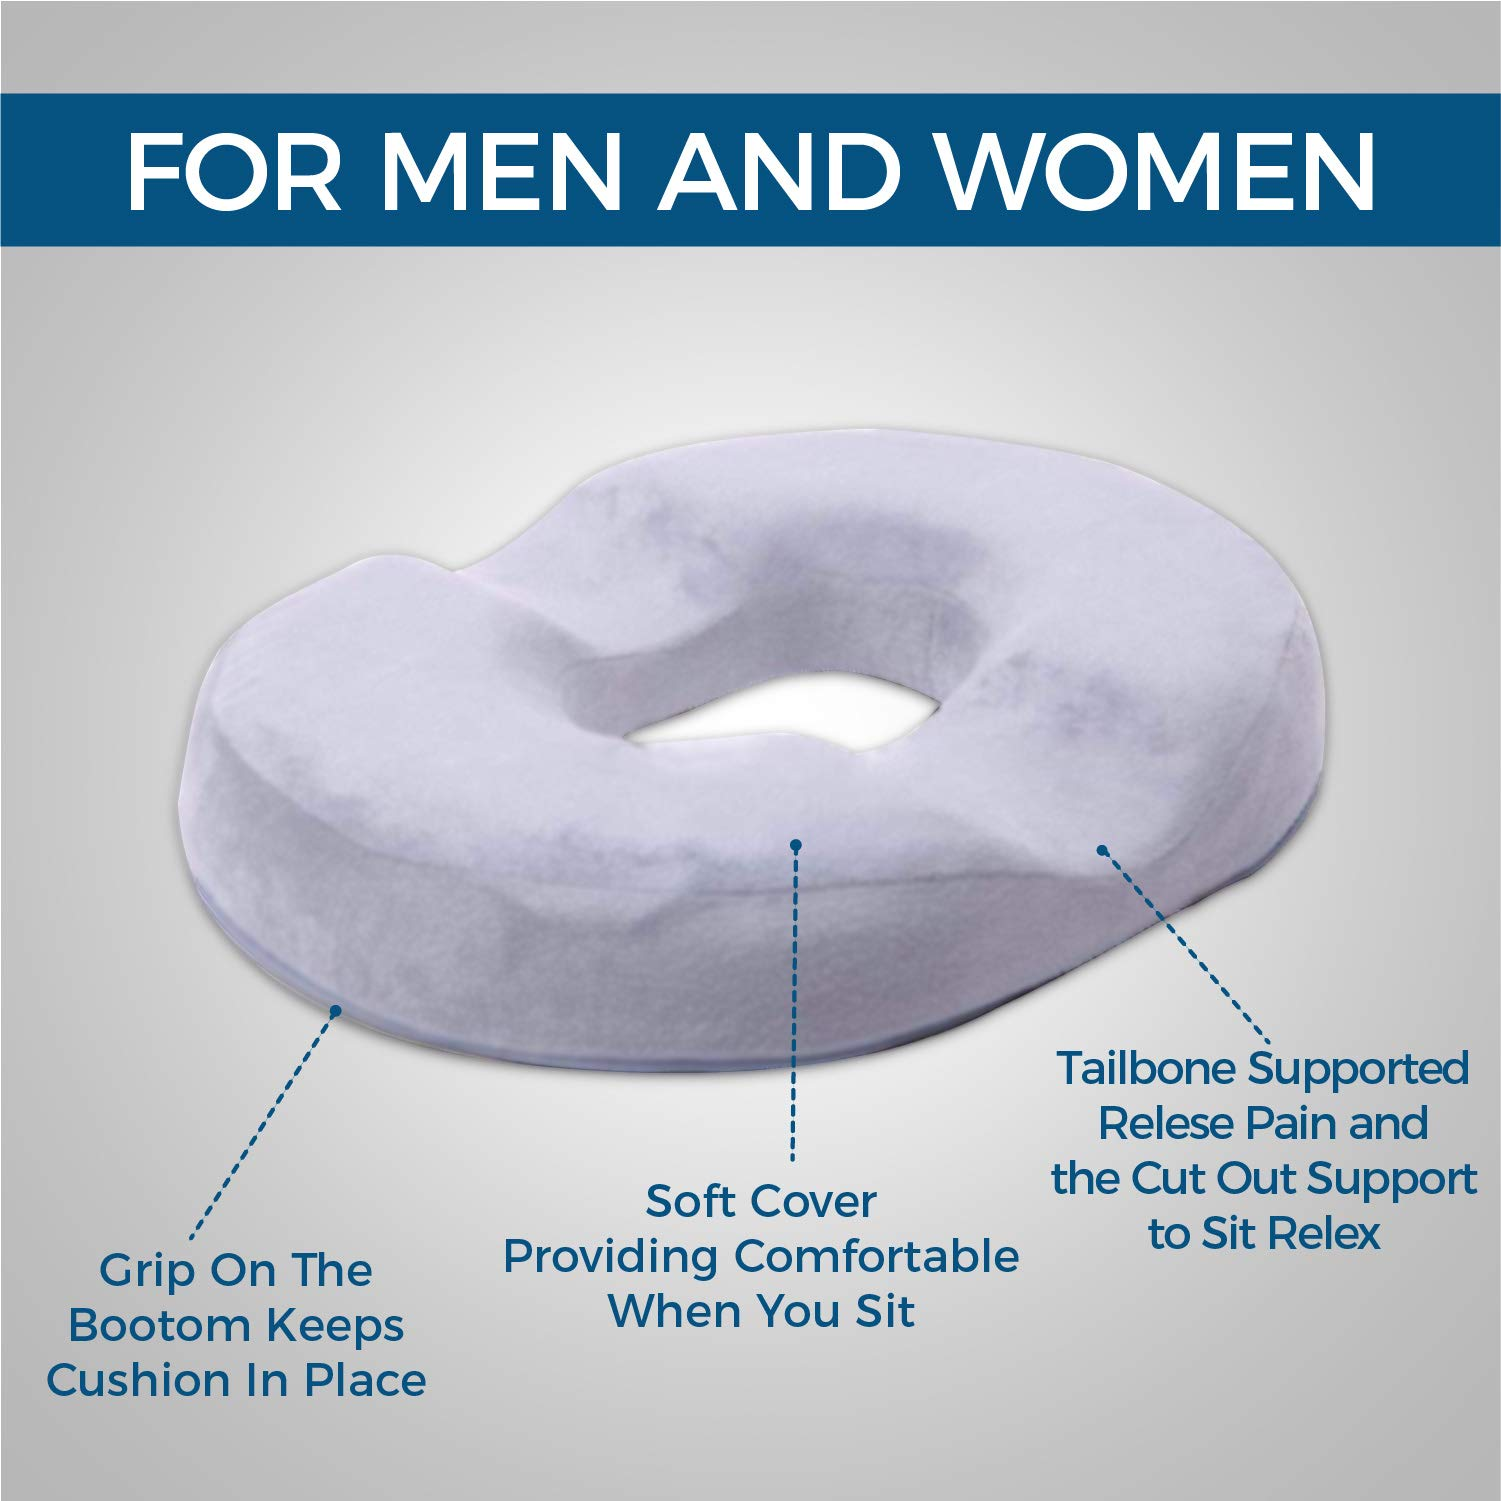 Grey Donut Pillow | Hemorrhoid Coccyx Tailbone Seat Cushion | Pain Relief | Premium Comfort | Contoured Cushion for Prostate, Pregnancy, Surgery, Post Natal Sciatica Relieves Pressure by Dr. Flink